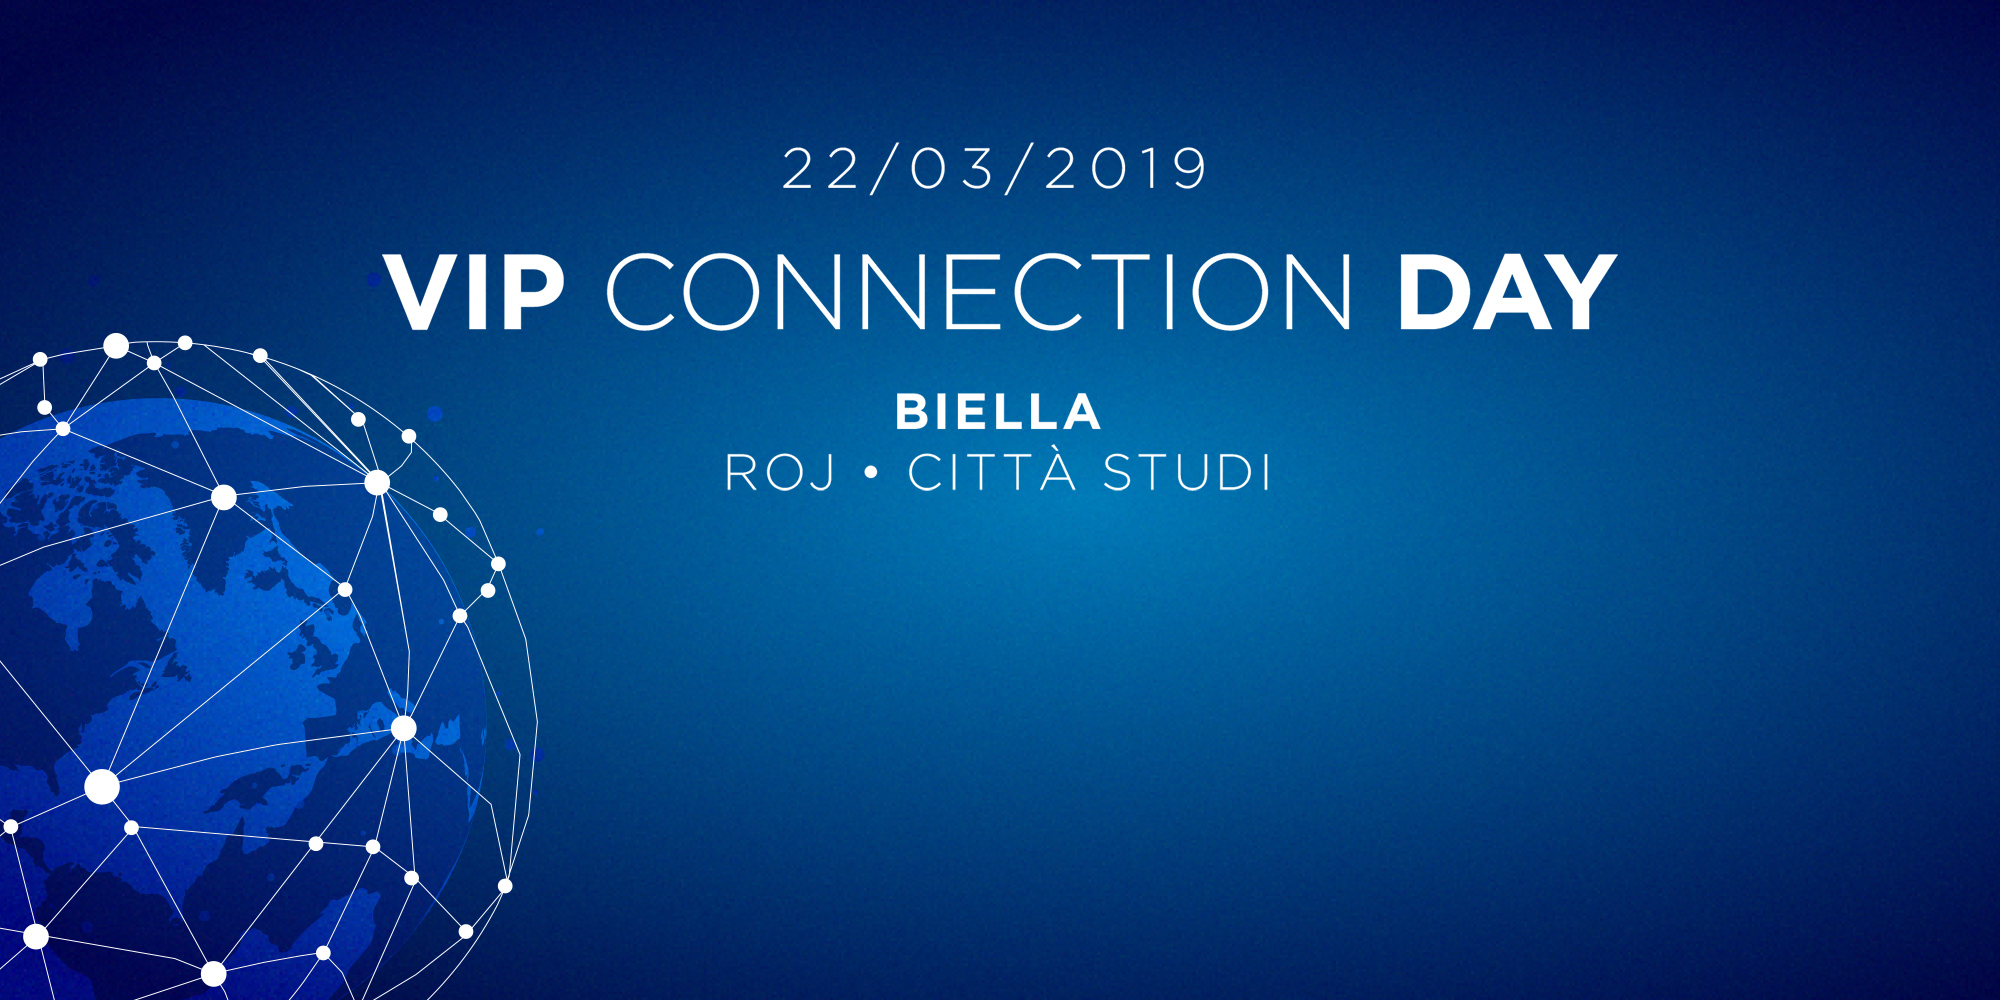 VIP_CONNECTION_DAY